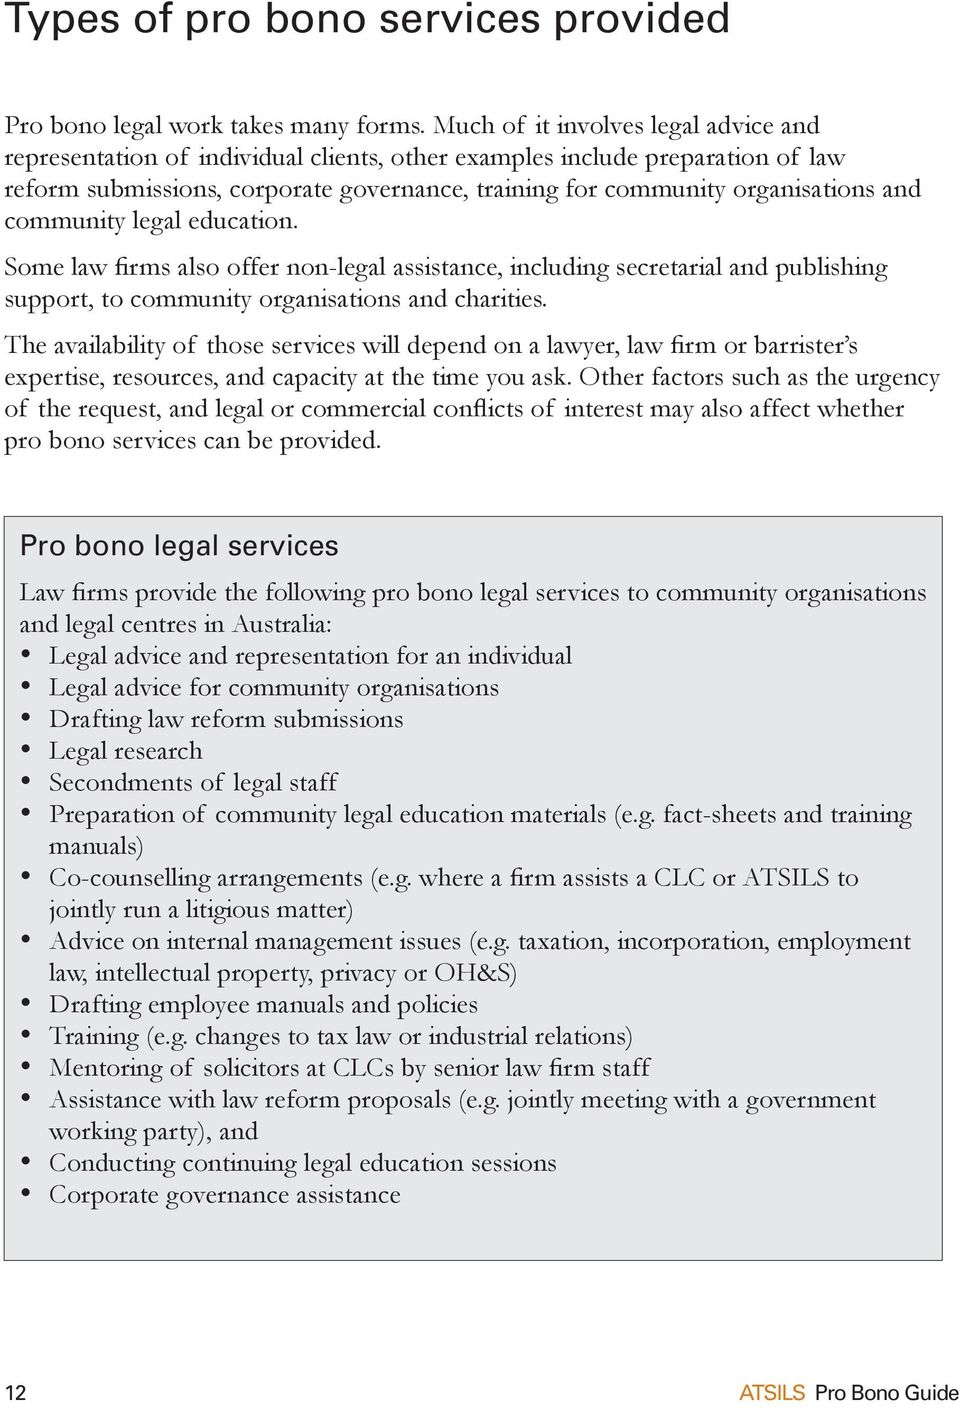 community legal education. Some law firms also offer non-legal assistance, including secretarial and publishing support, to community organisations and charities.